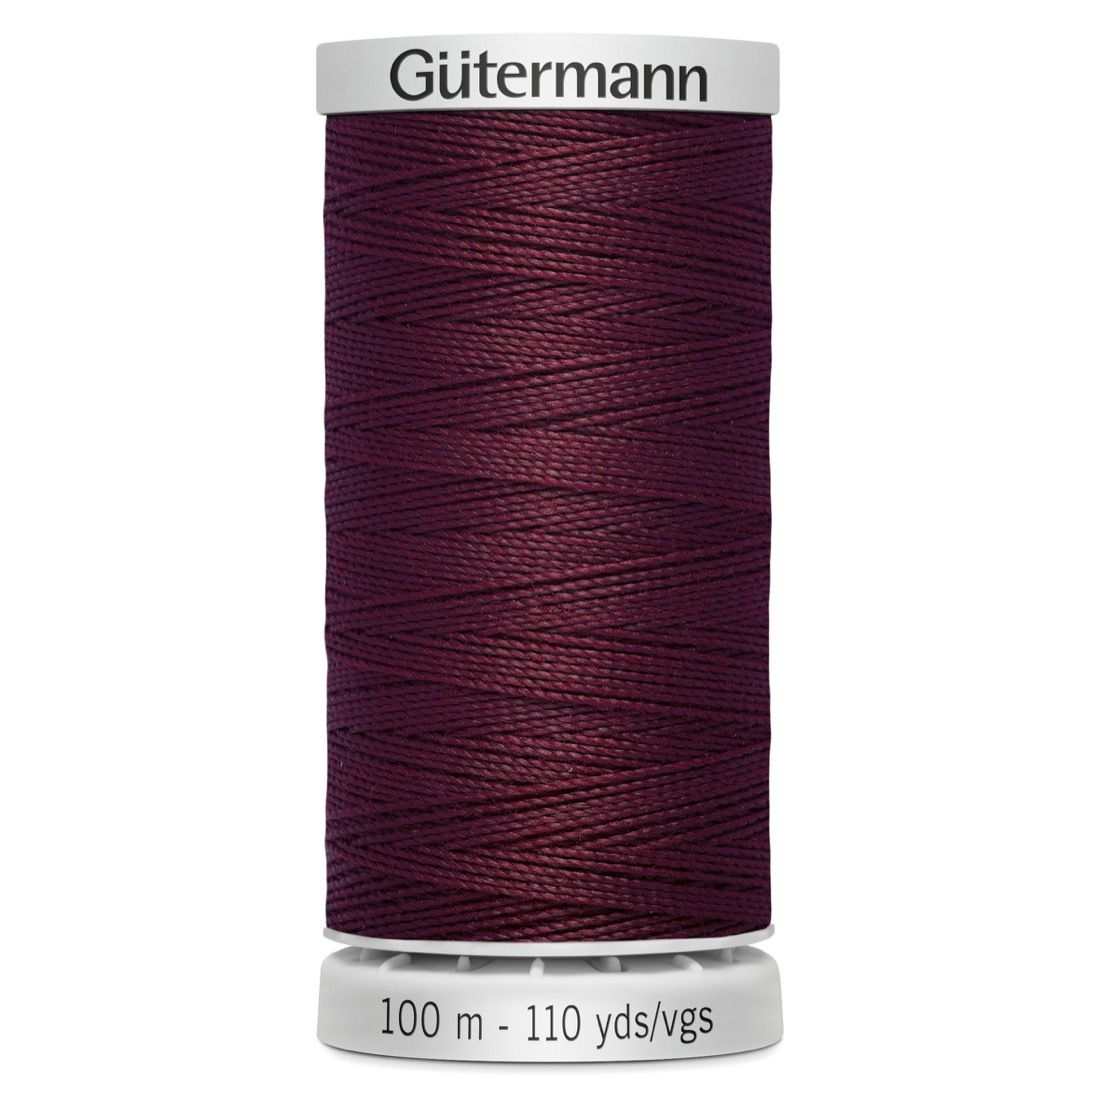 Gutermann Extra Strong Upholstery Thread - 100m - 369